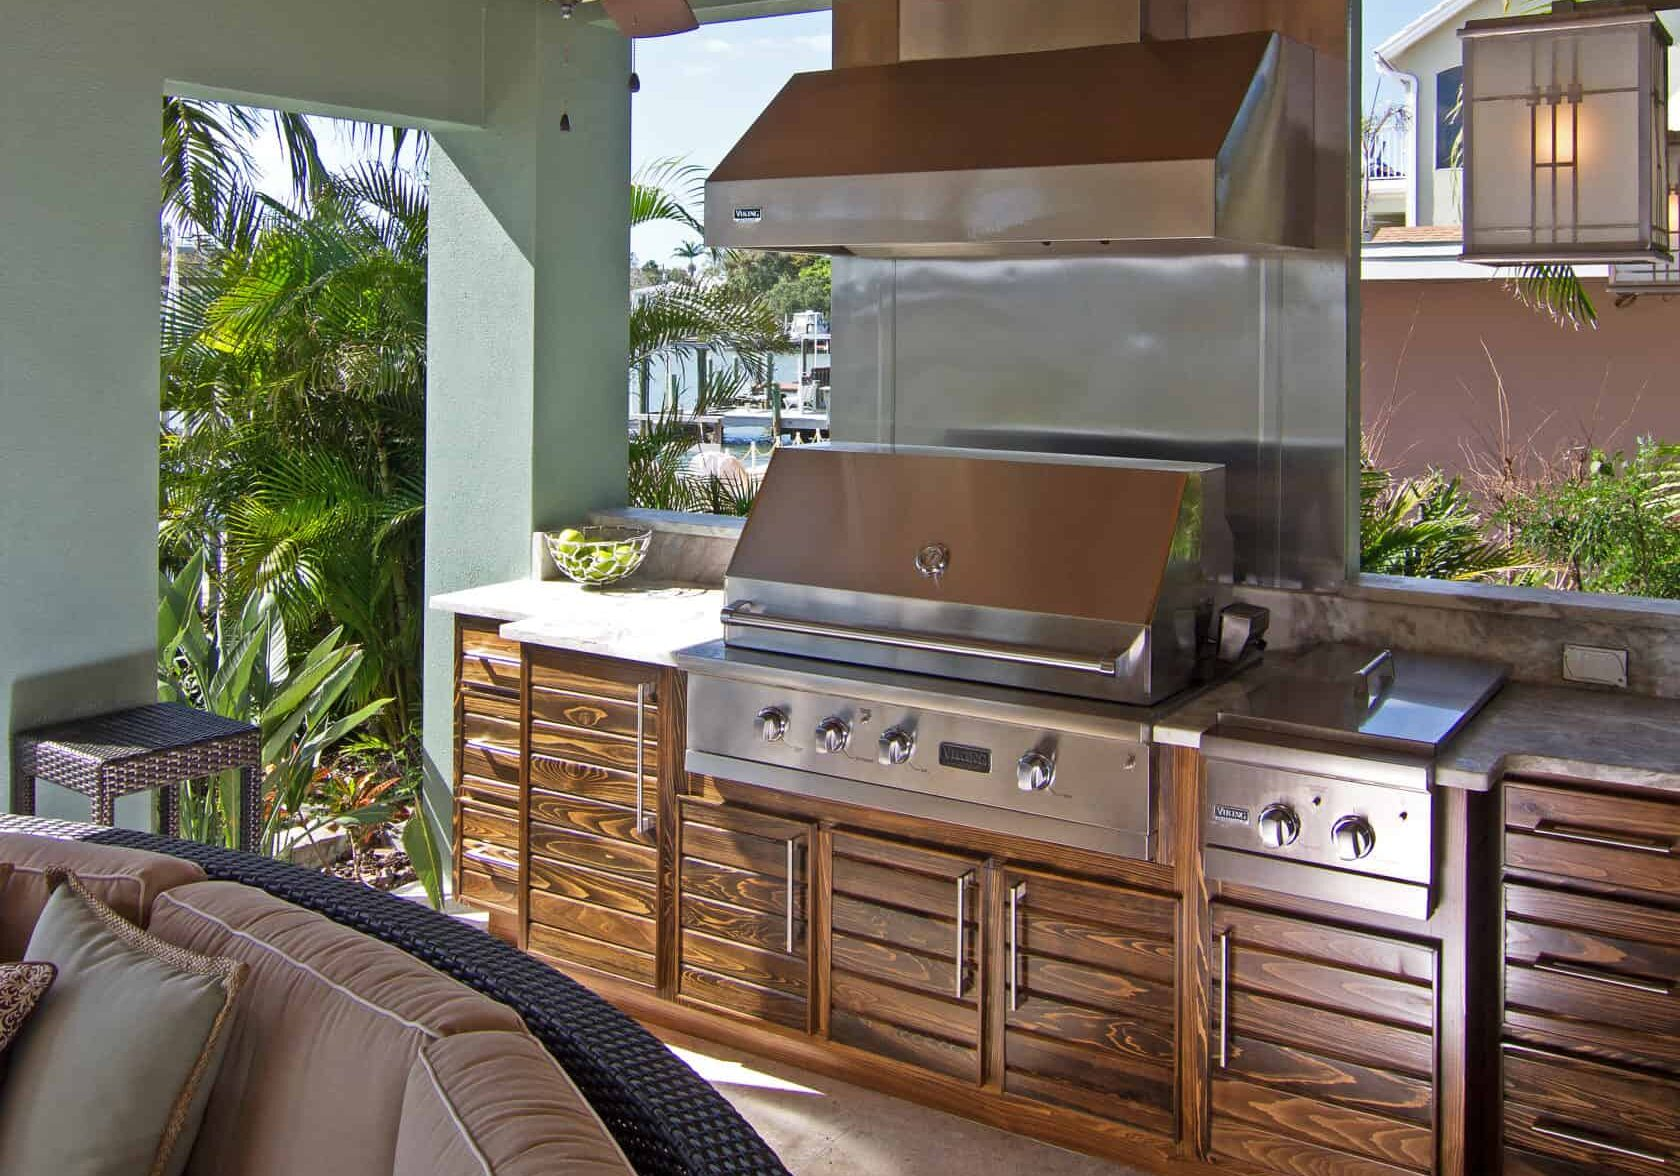 mccabinet outdoor kitchen